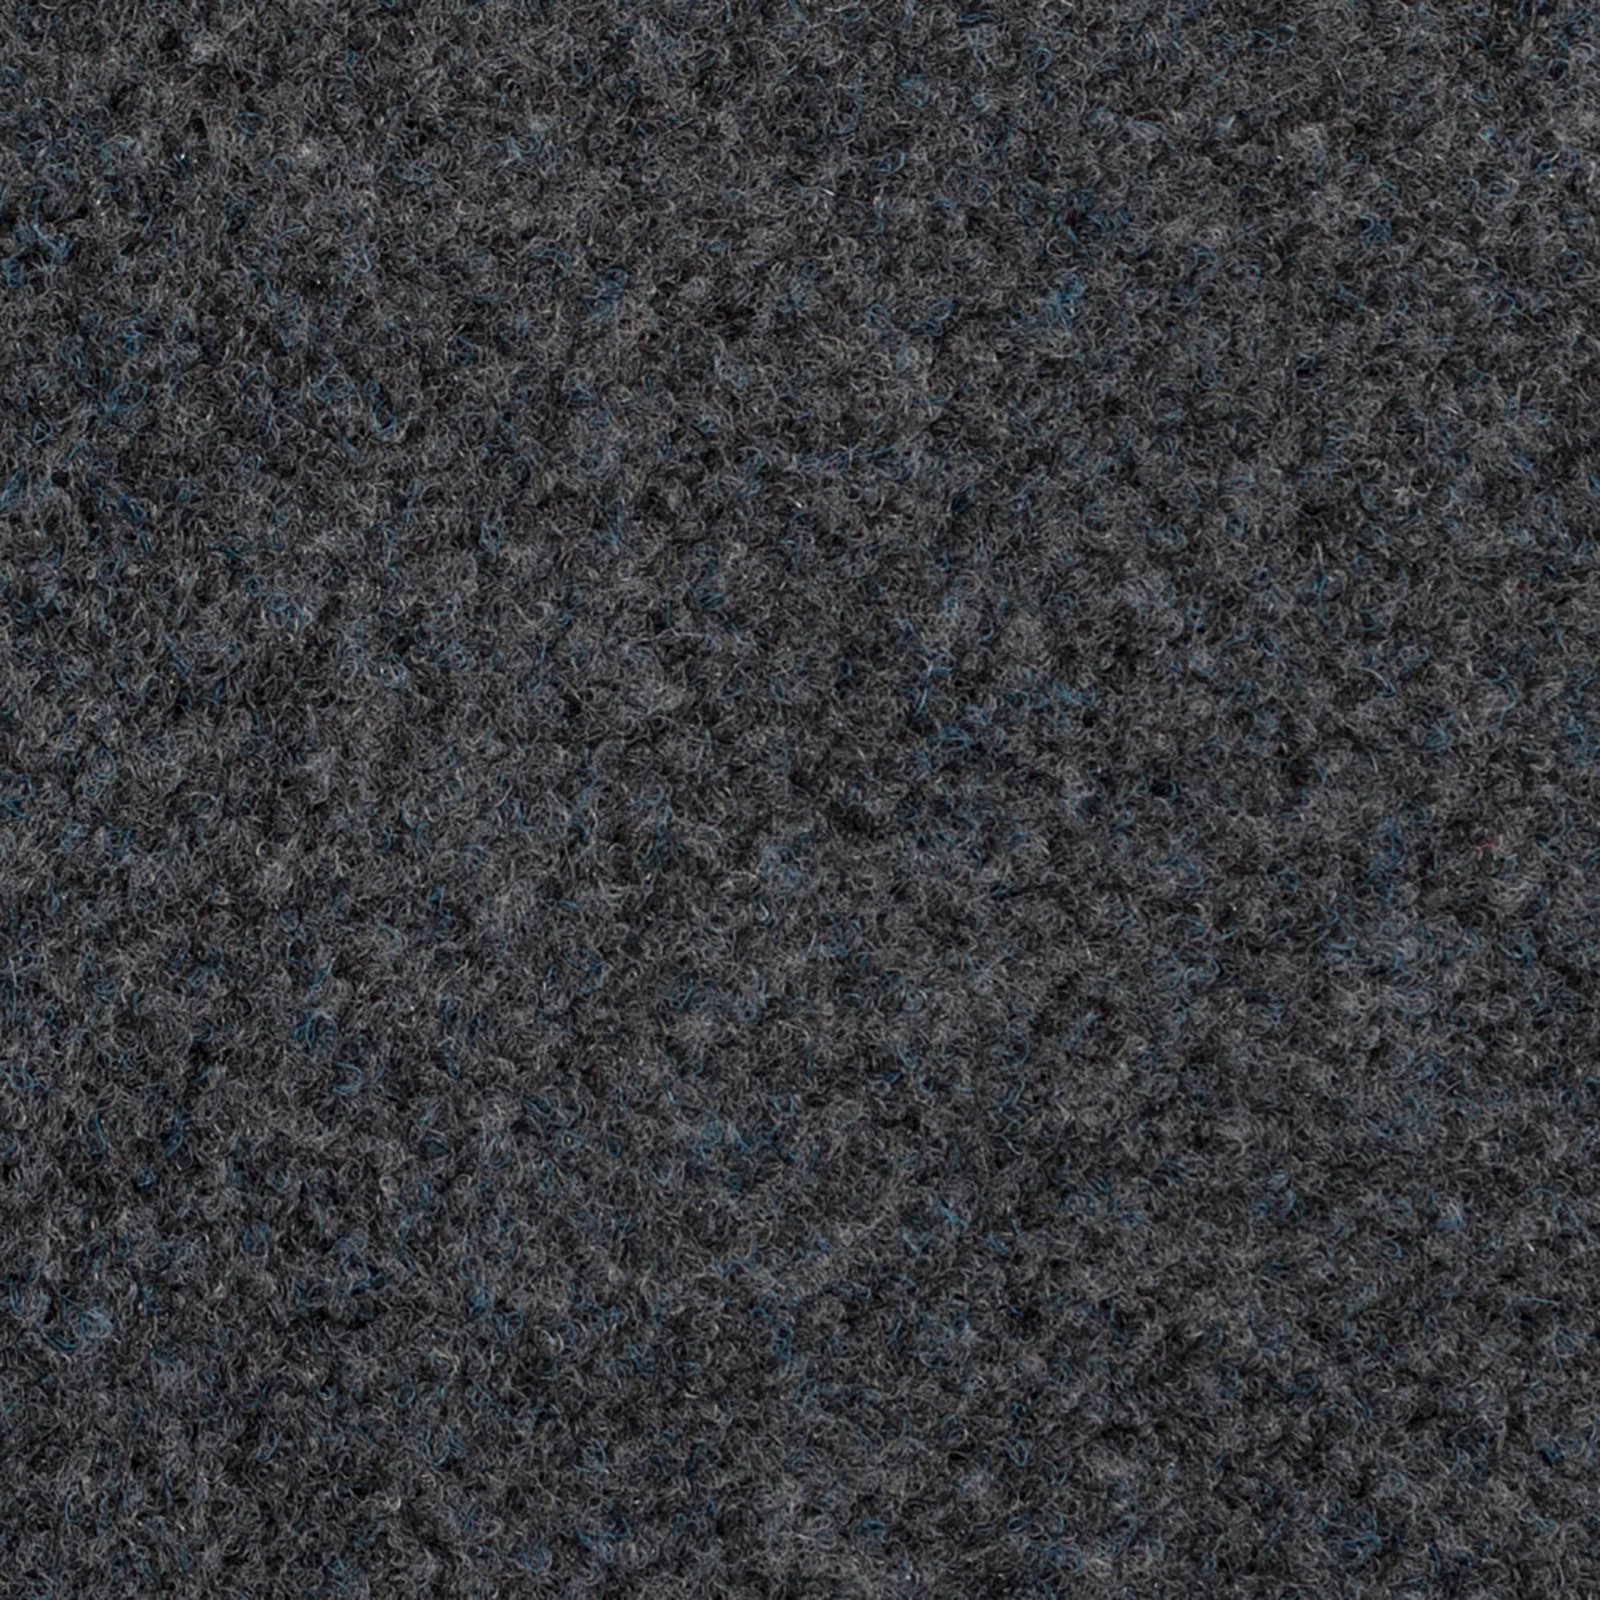 Grey Outdoor Carpet - Far